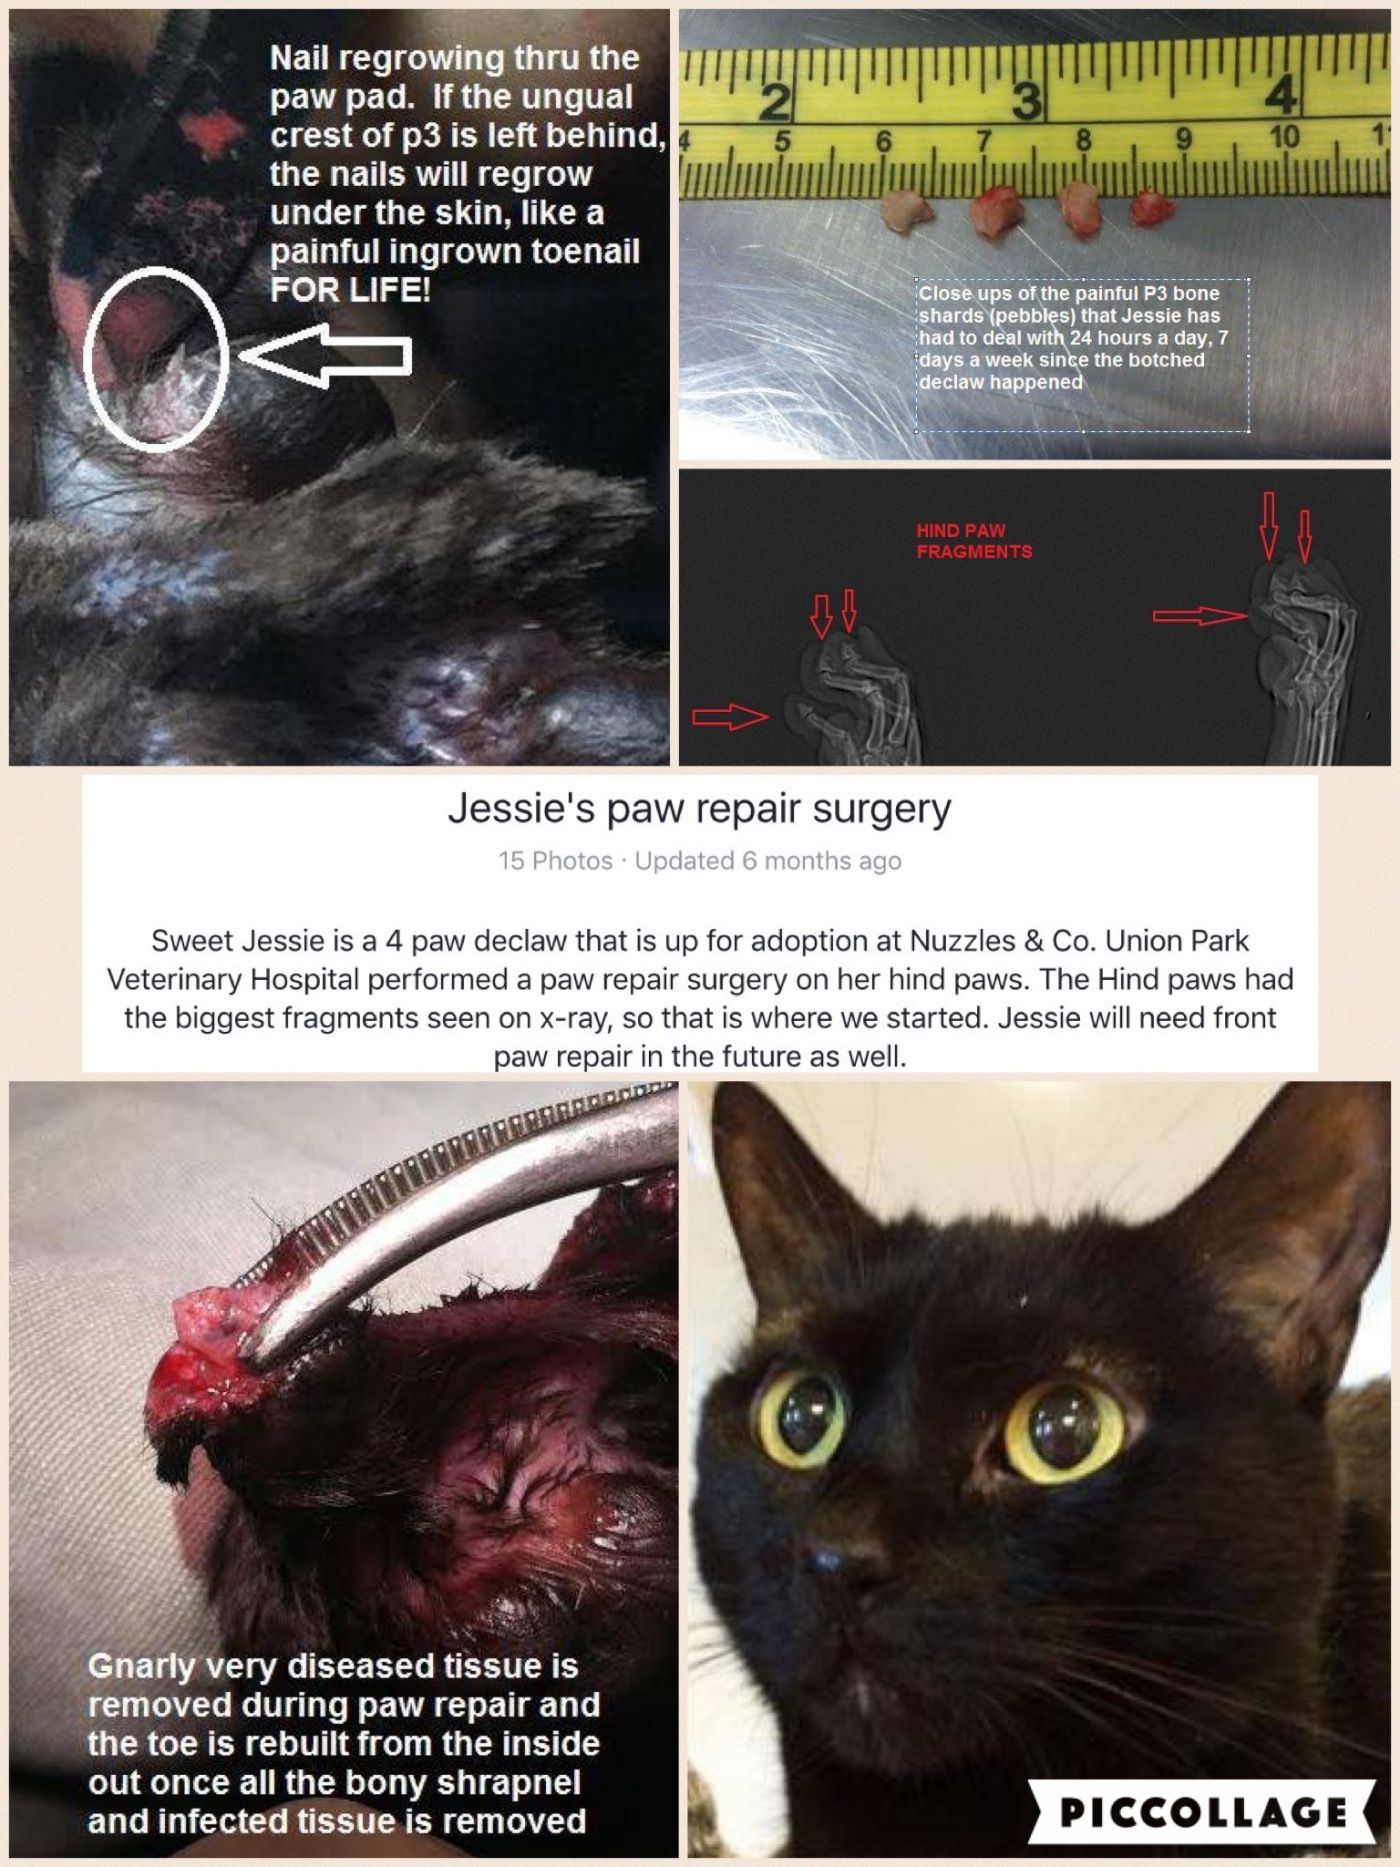 The Following Do Not Want To Document Declaw Re Surgeries Because They Are Greedy Animal Abusers Avma2017 Avmameets Catvets Vet Student Vet Med Vet School